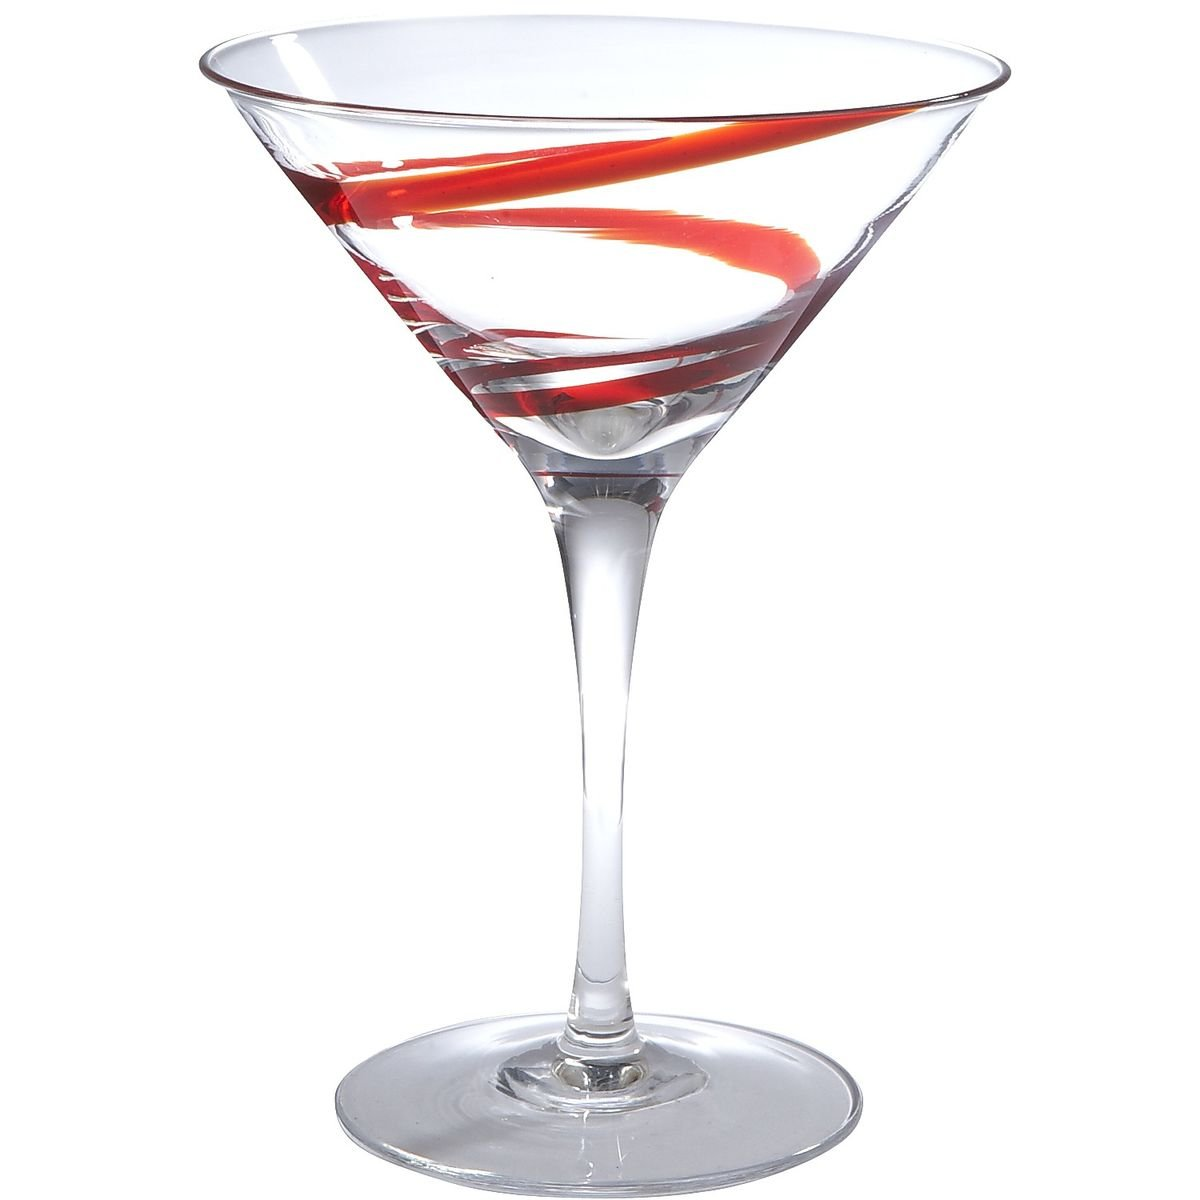 Copa para martini red spiral line pier 1 imports sears for Copas para martini